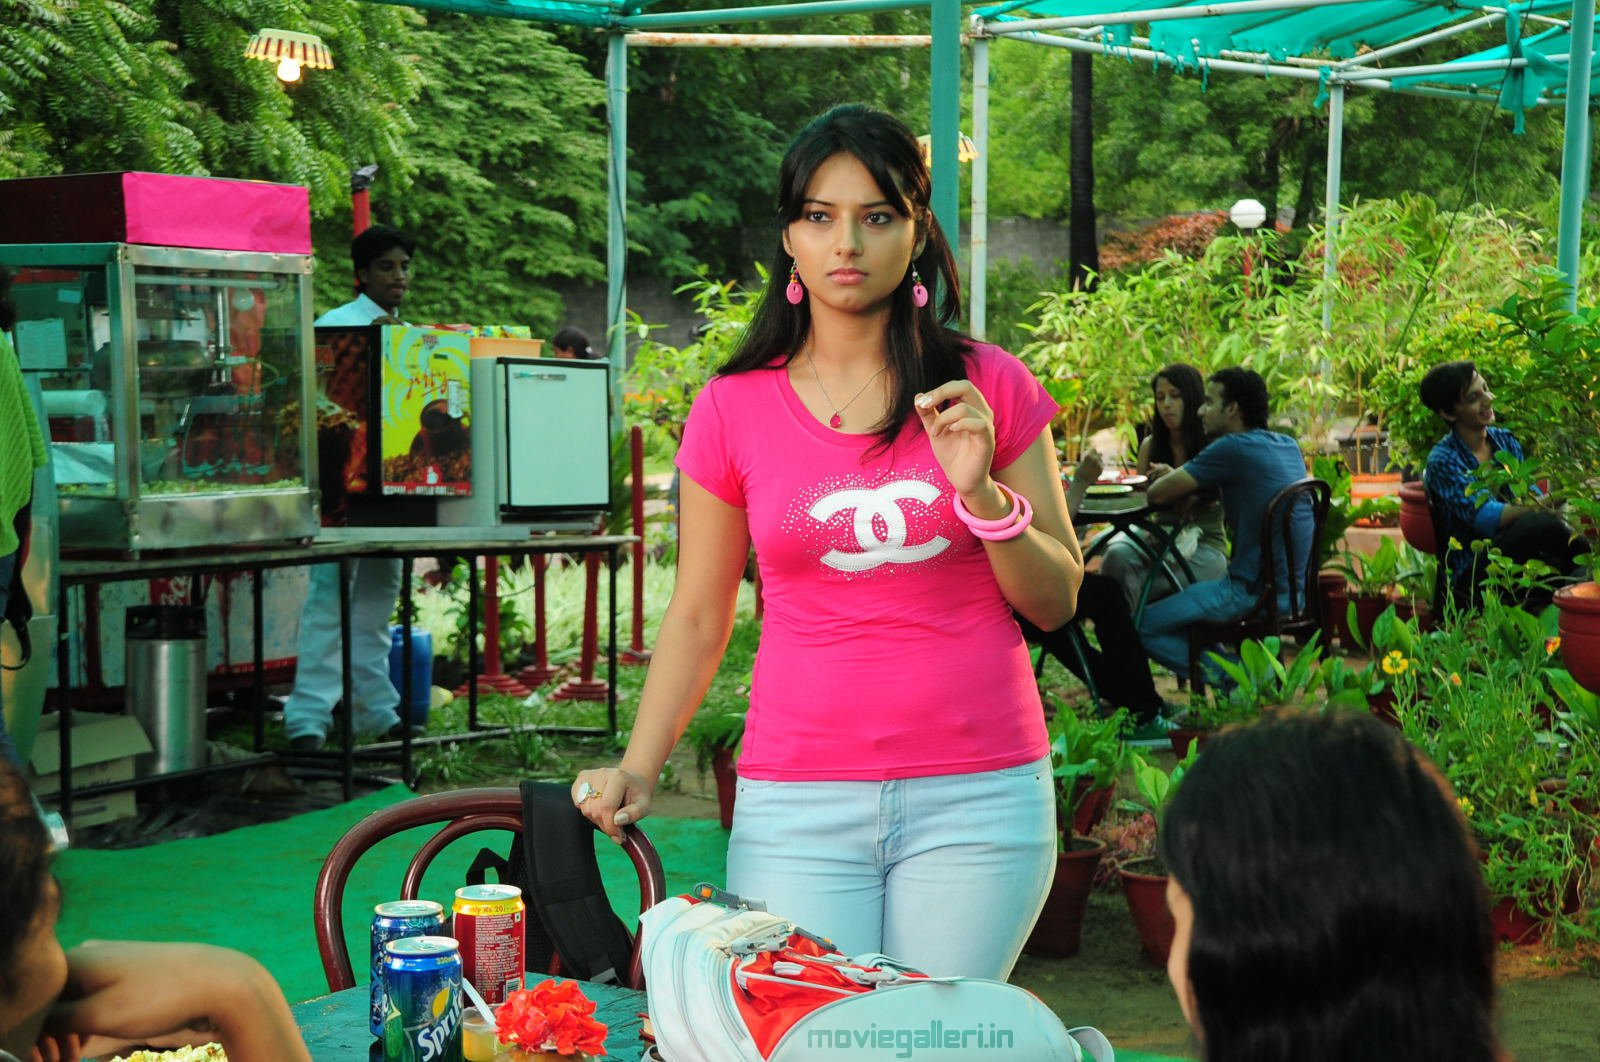 http://1.bp.blogspot.com/_6Vr9b9OoZno/TNzdJiy-T1I/AAAAAAAADmg/8Q5tlrHe3YM/s1600/prema_kavali_movie_stills_wallpapers_06.JPG